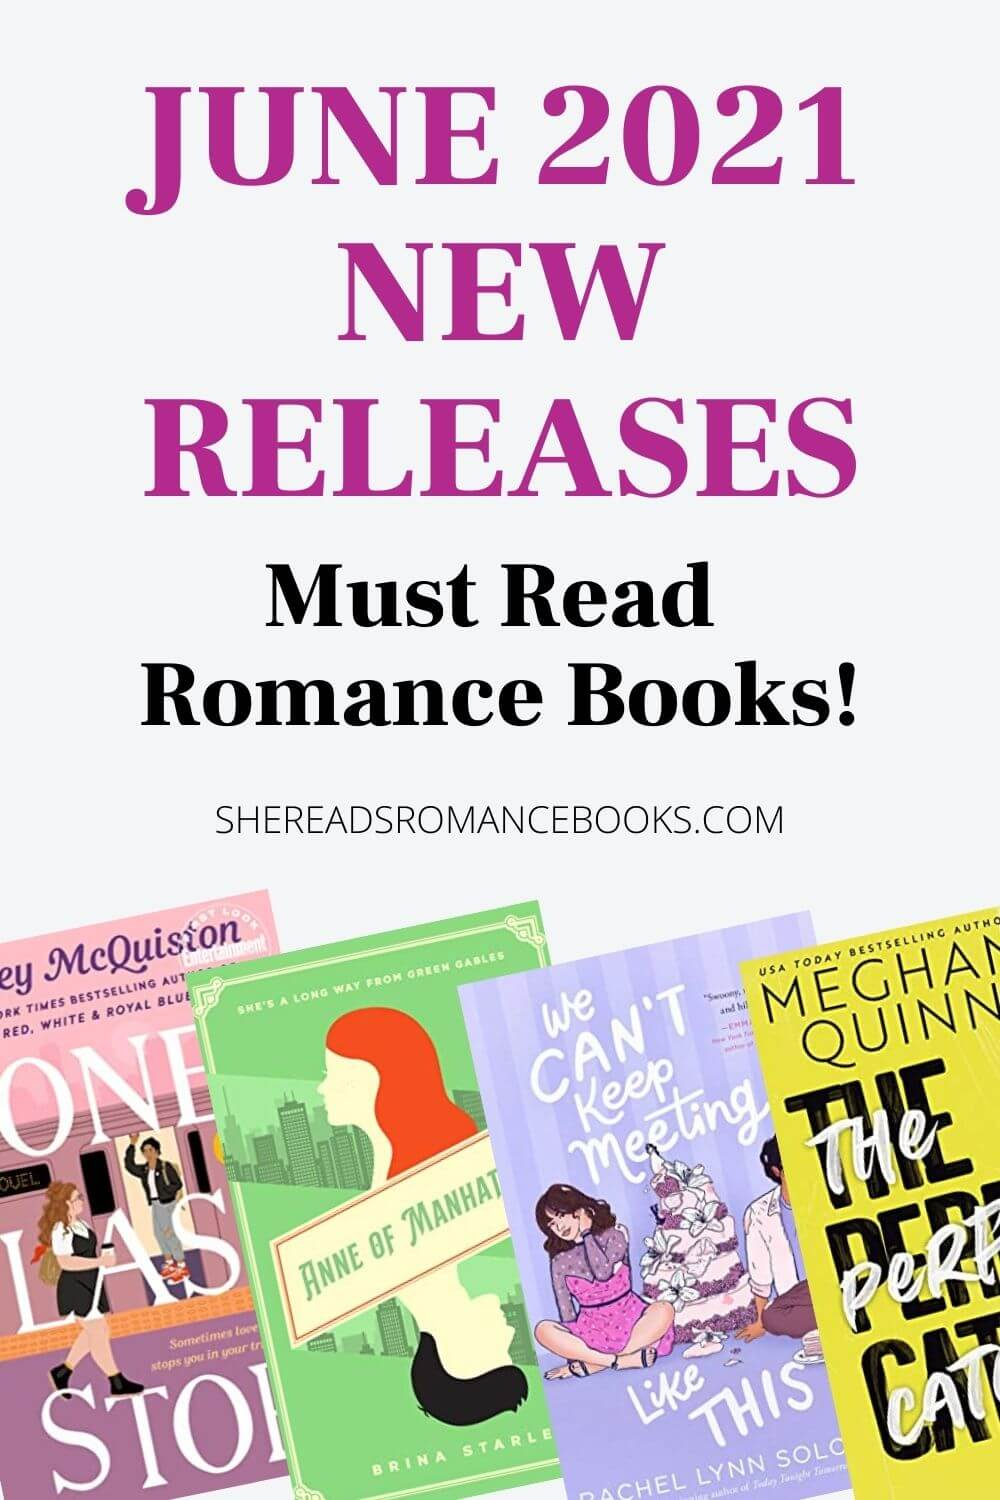 New Romance Book Releases for June 2021 book list.